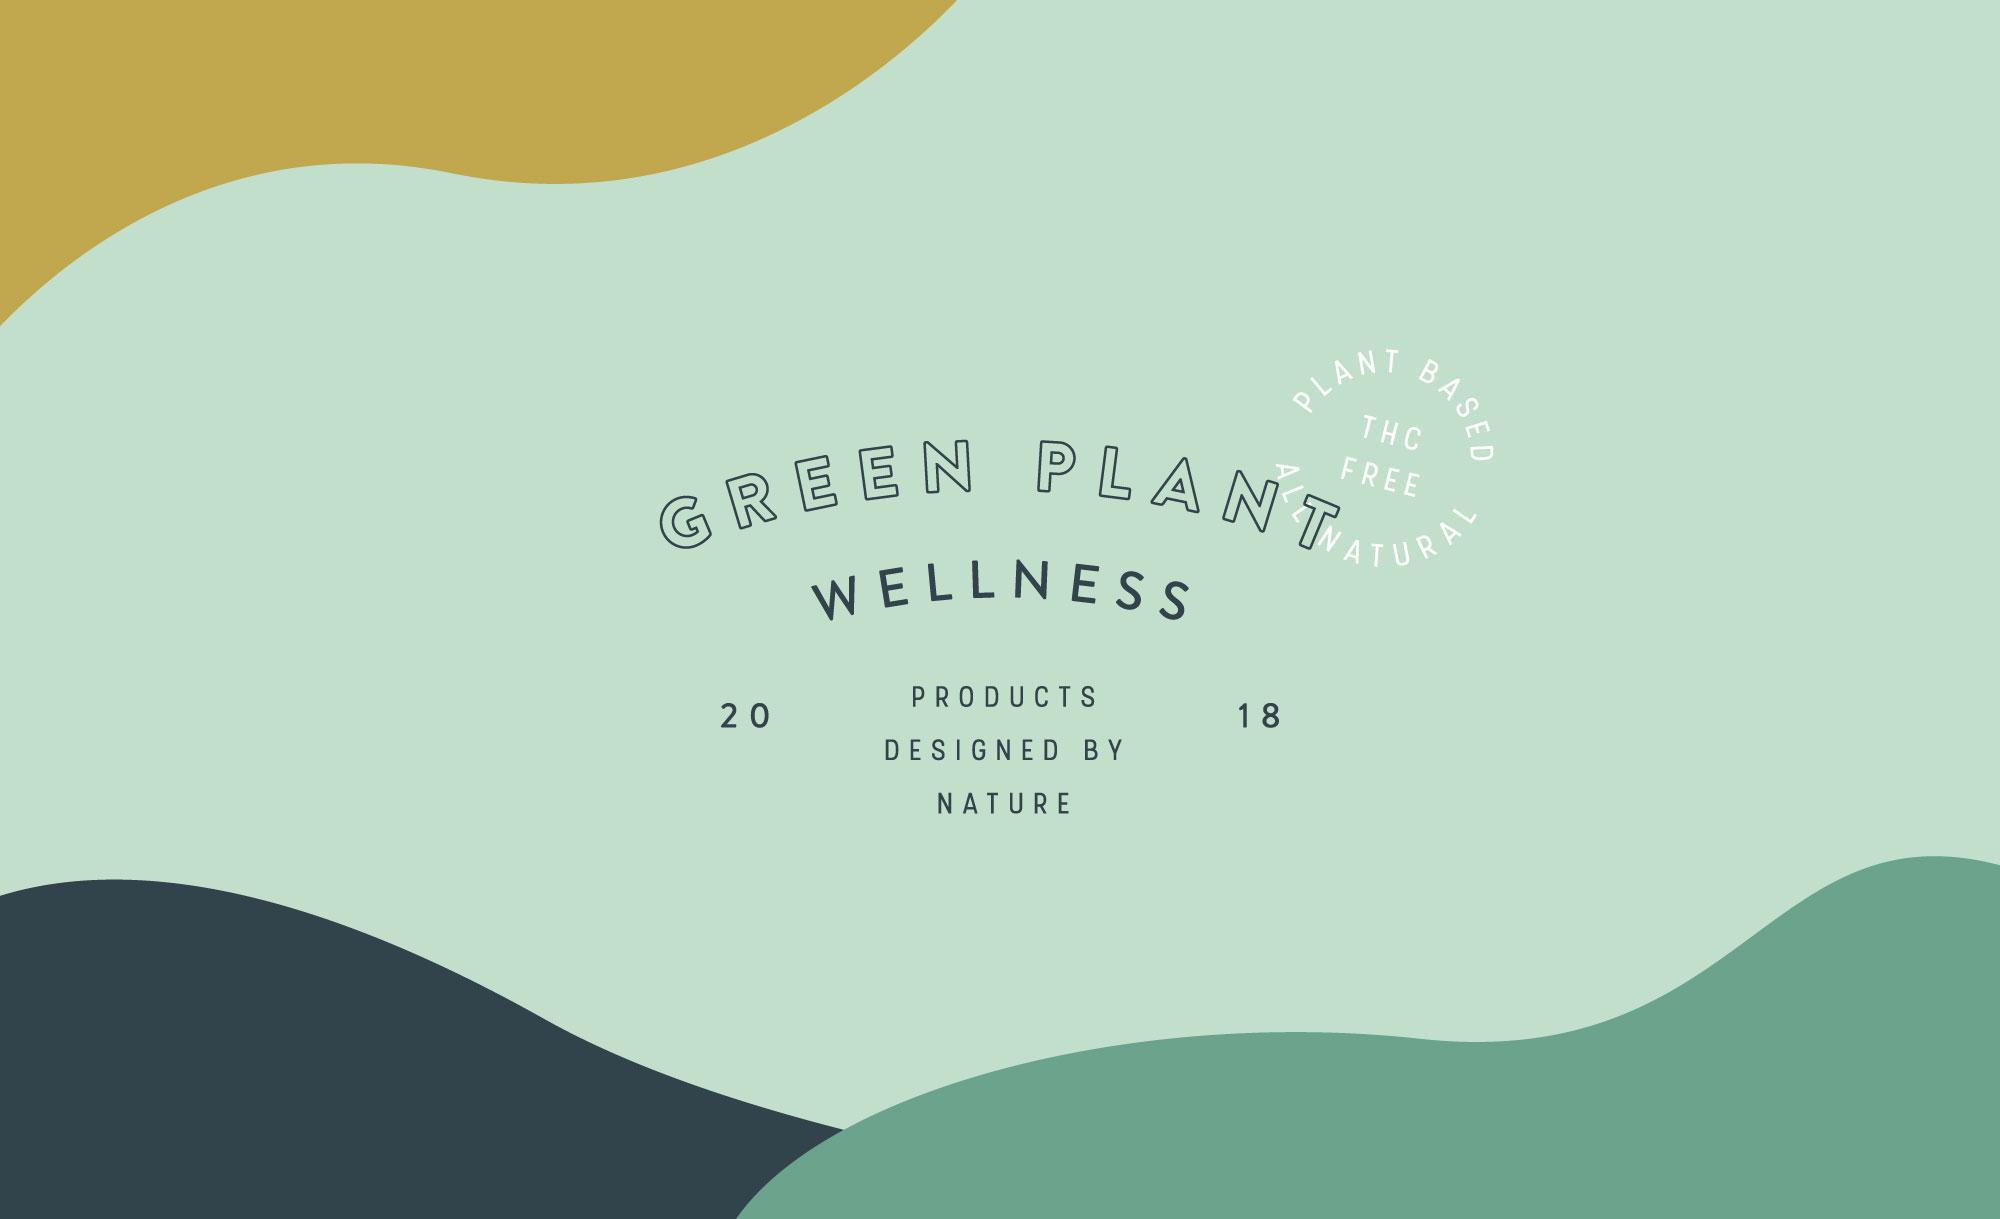 Green Plant Wellness Brand and Packaging Design by Viola Hill Studio